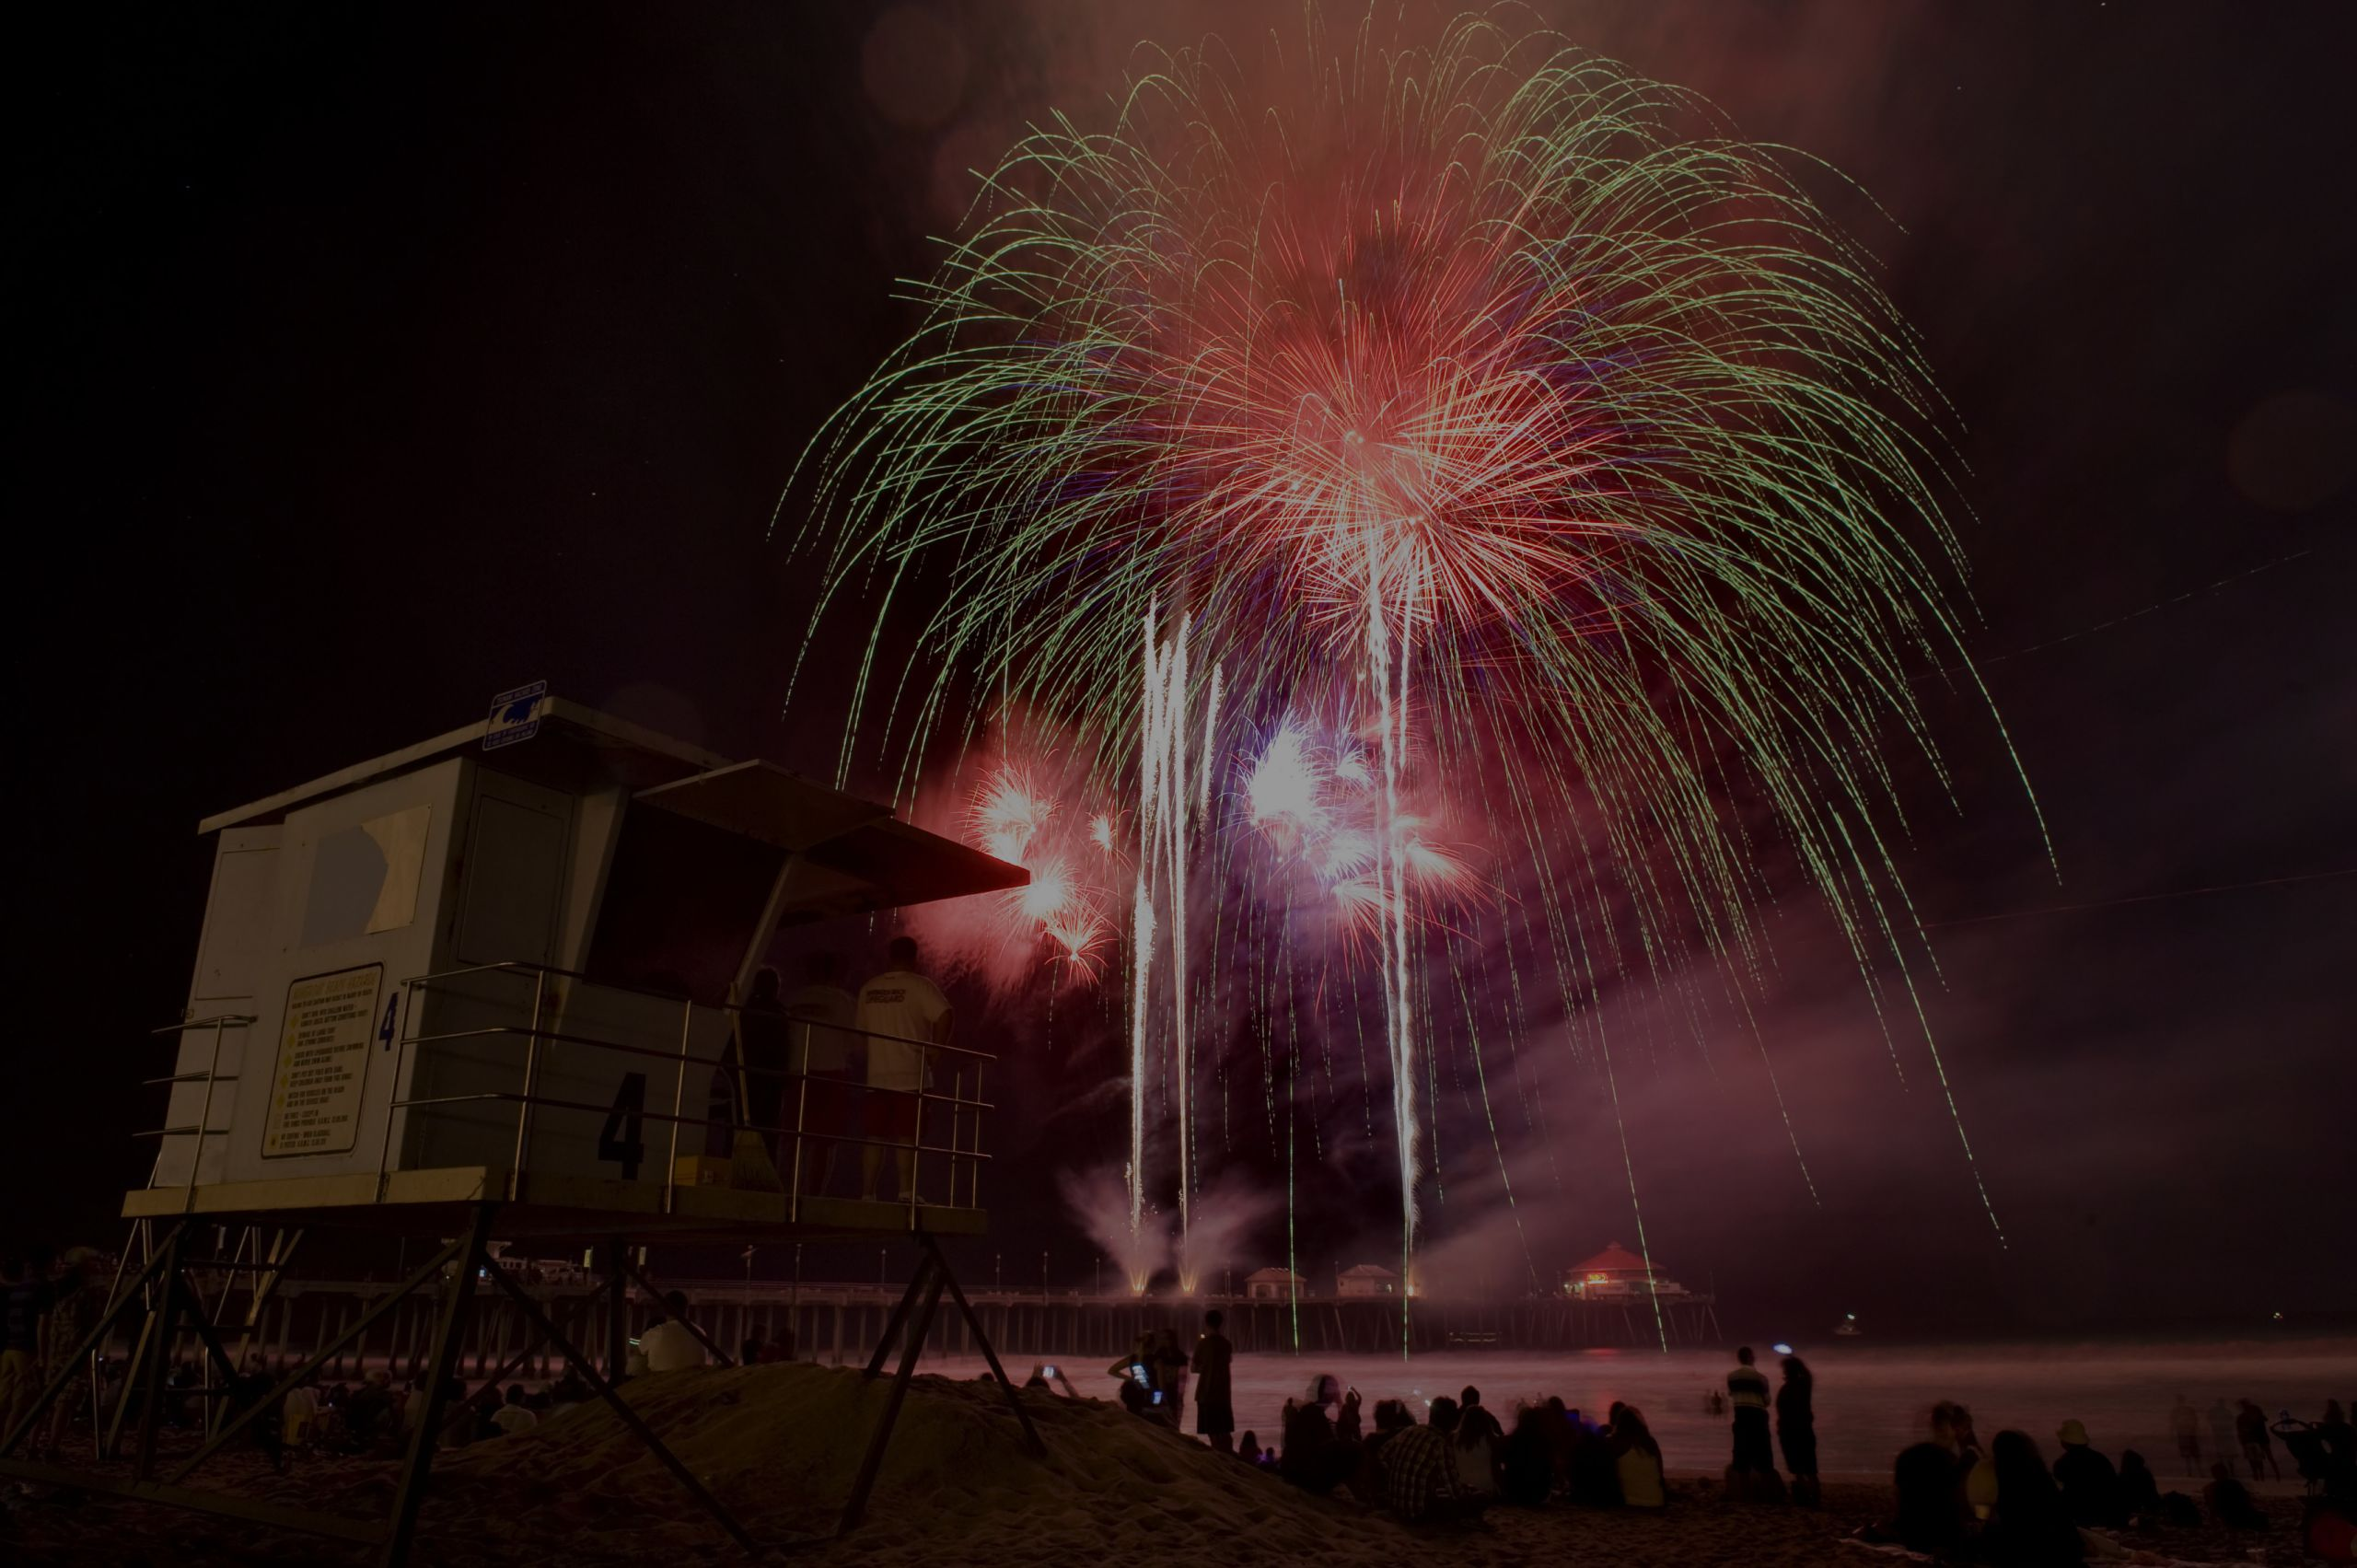 Here's where to find Fourth of July weekend events in the South Bay and Long Beach areas